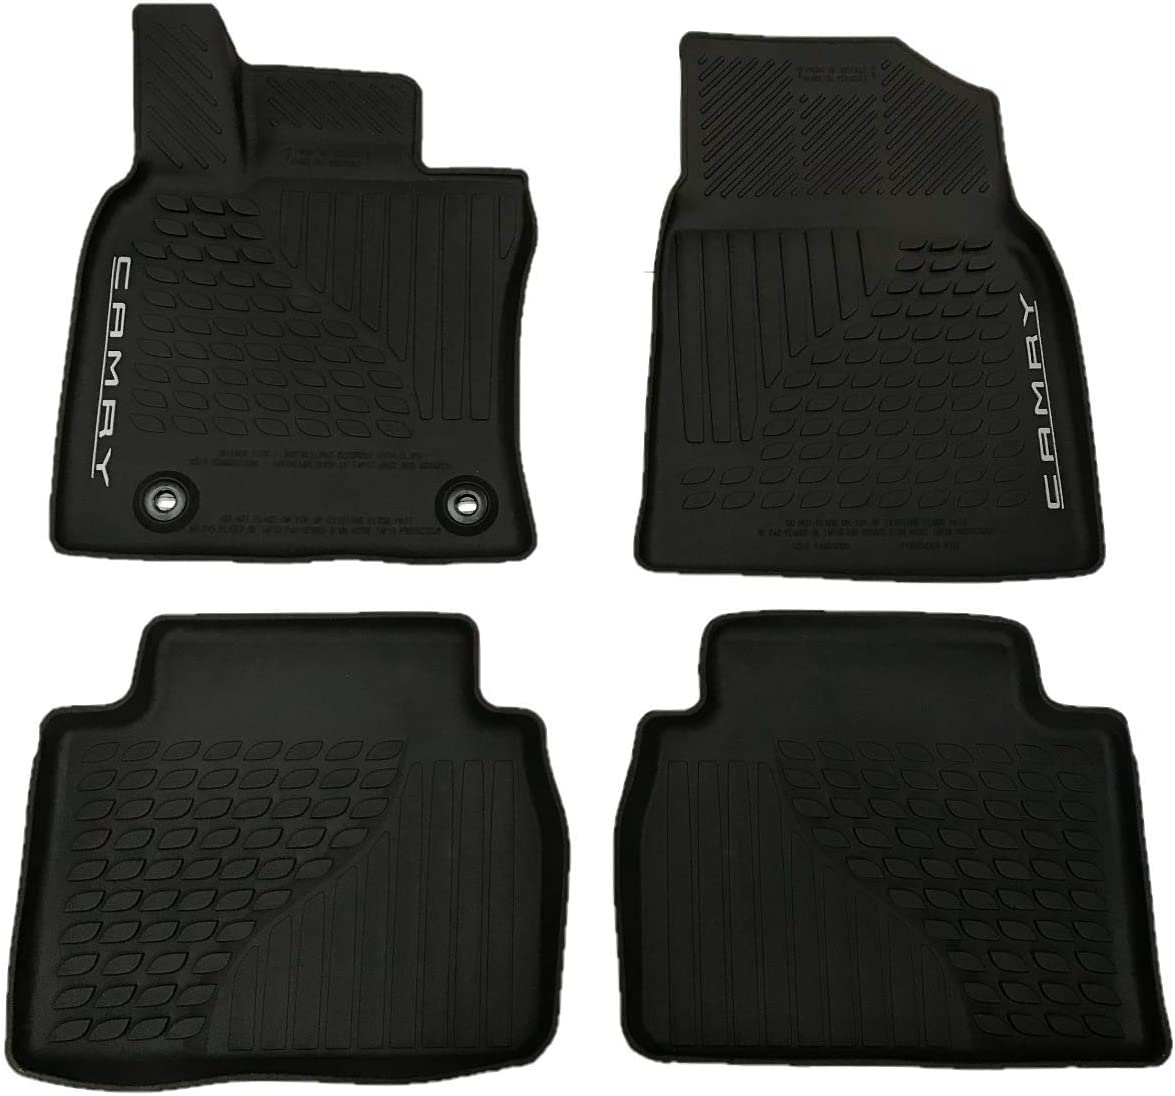 2018 TOYOTA CAMRY LE//XLE//SE//XSE ALL WEATHER FLOOR MATS//LINERS  PT908-03180-20